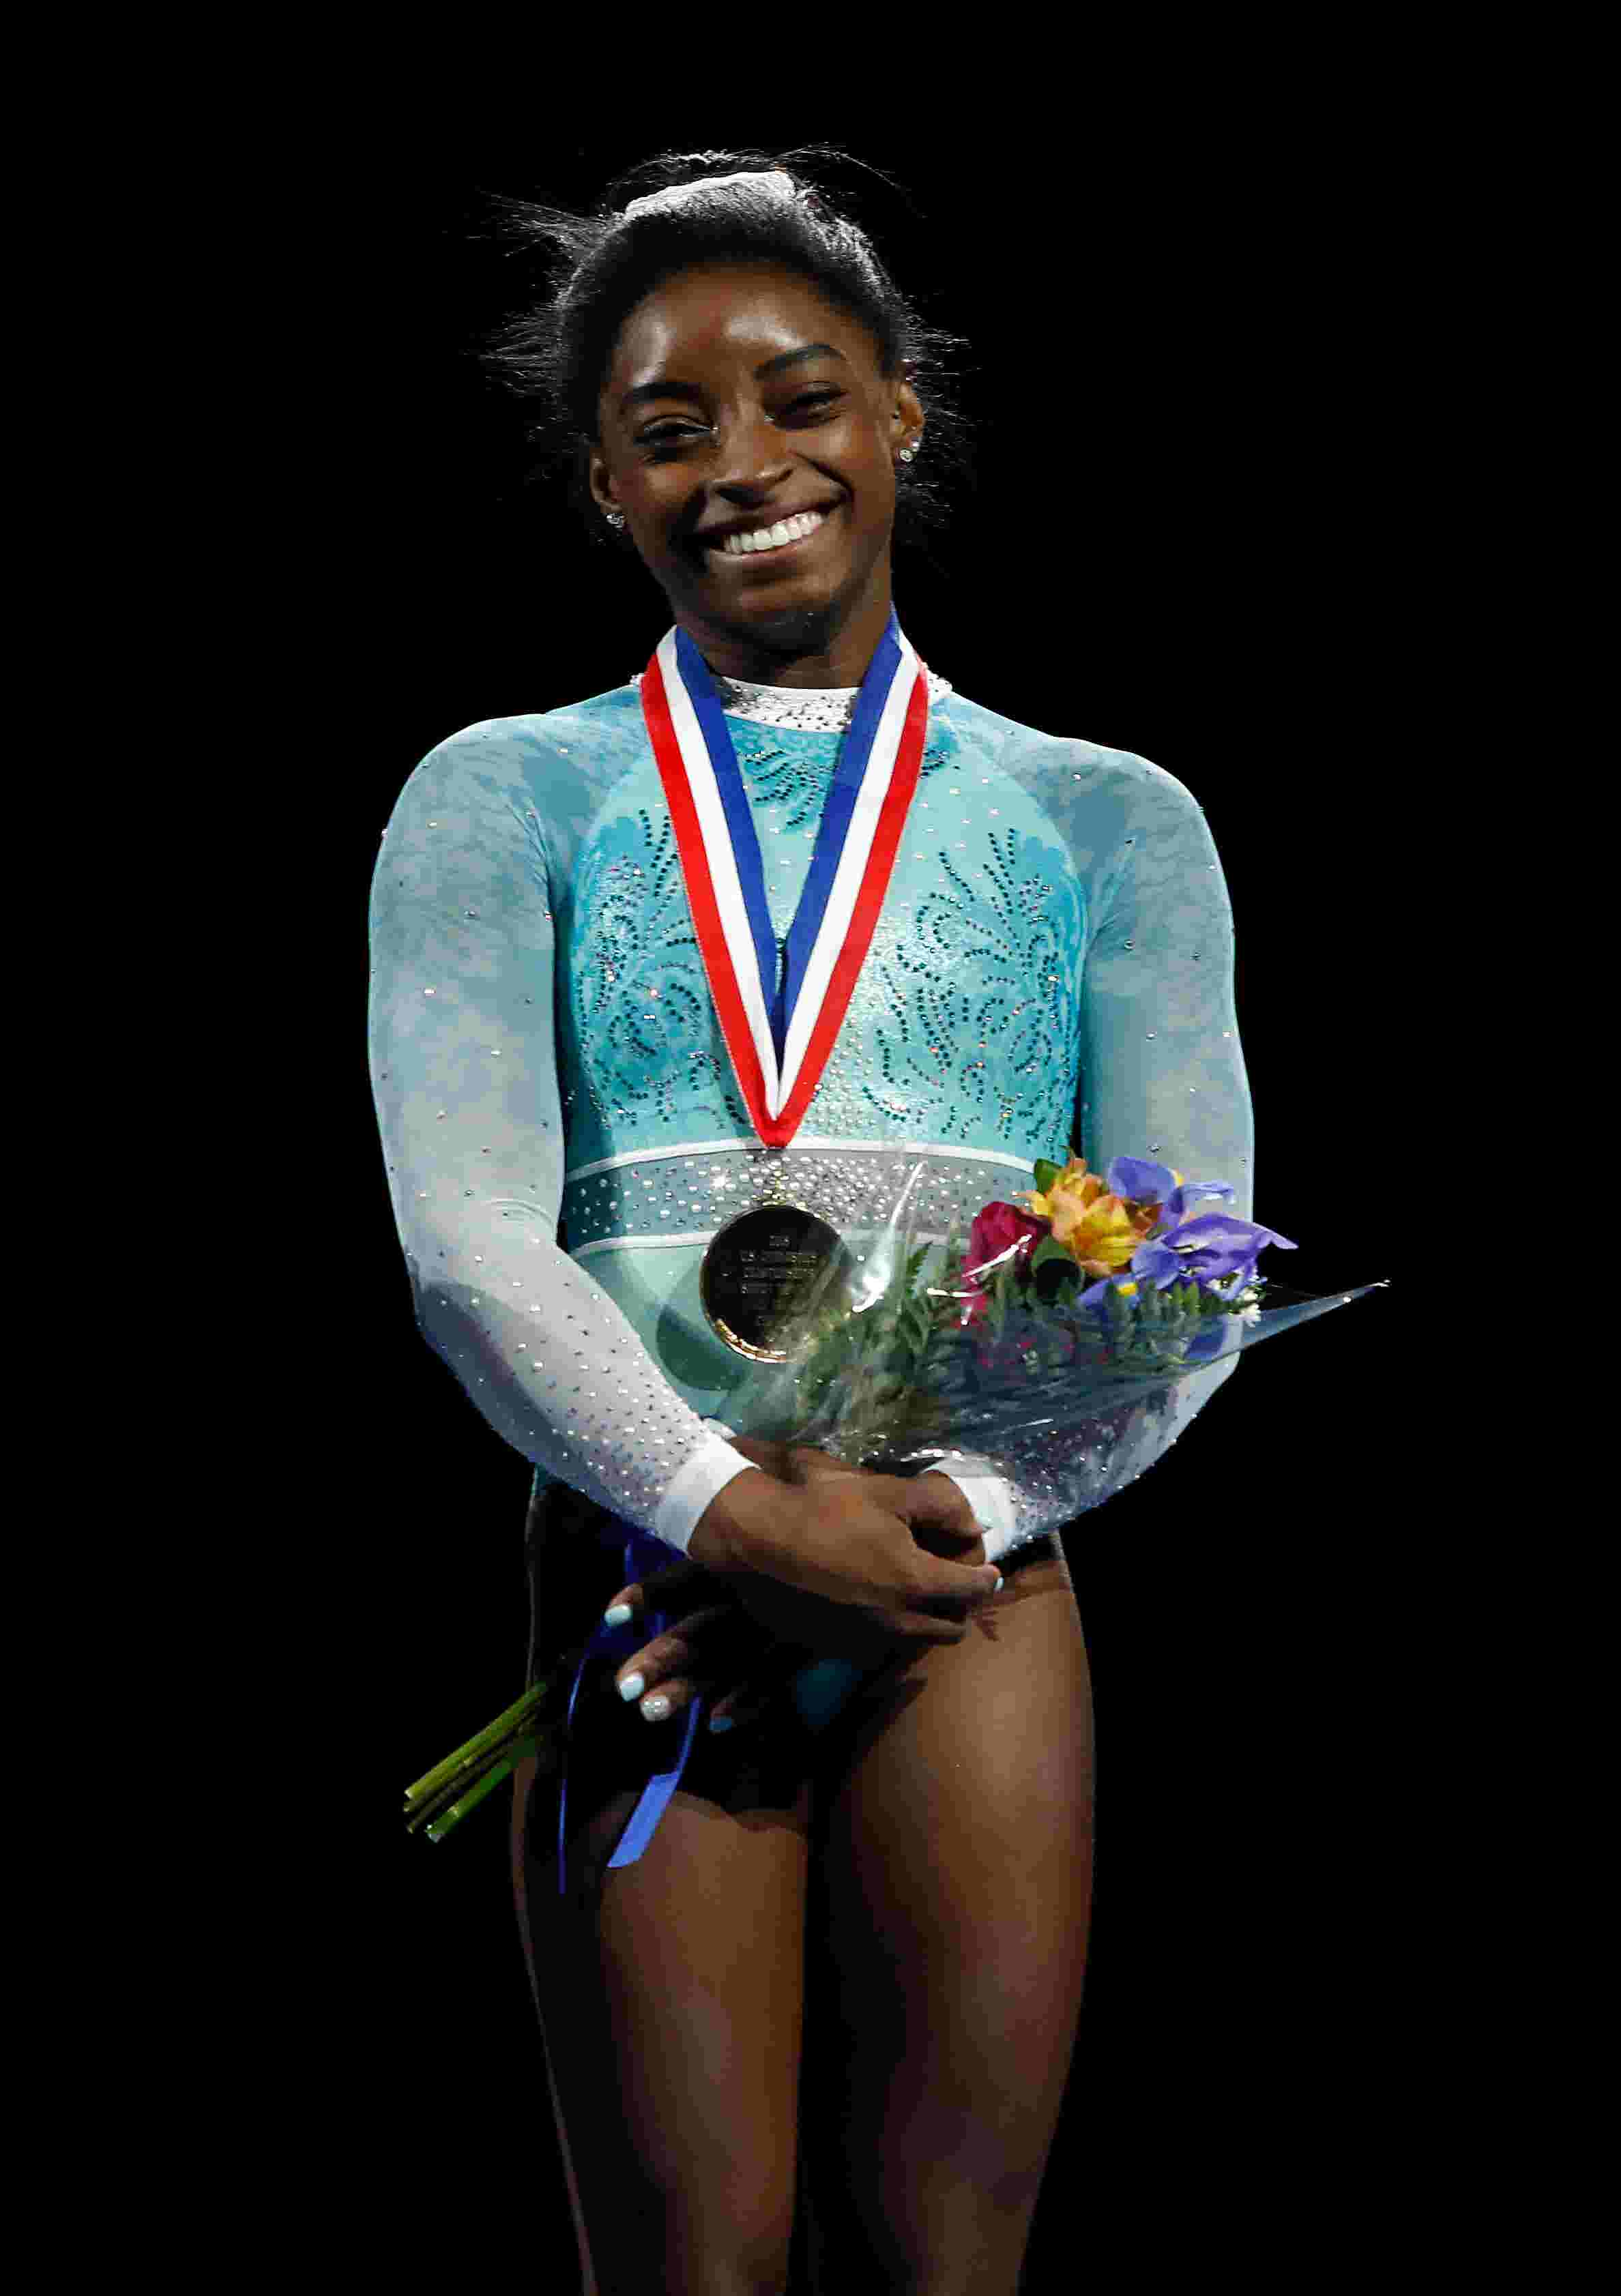 8e8af37c0 Olympic champion Simone Biles using her power in a new way